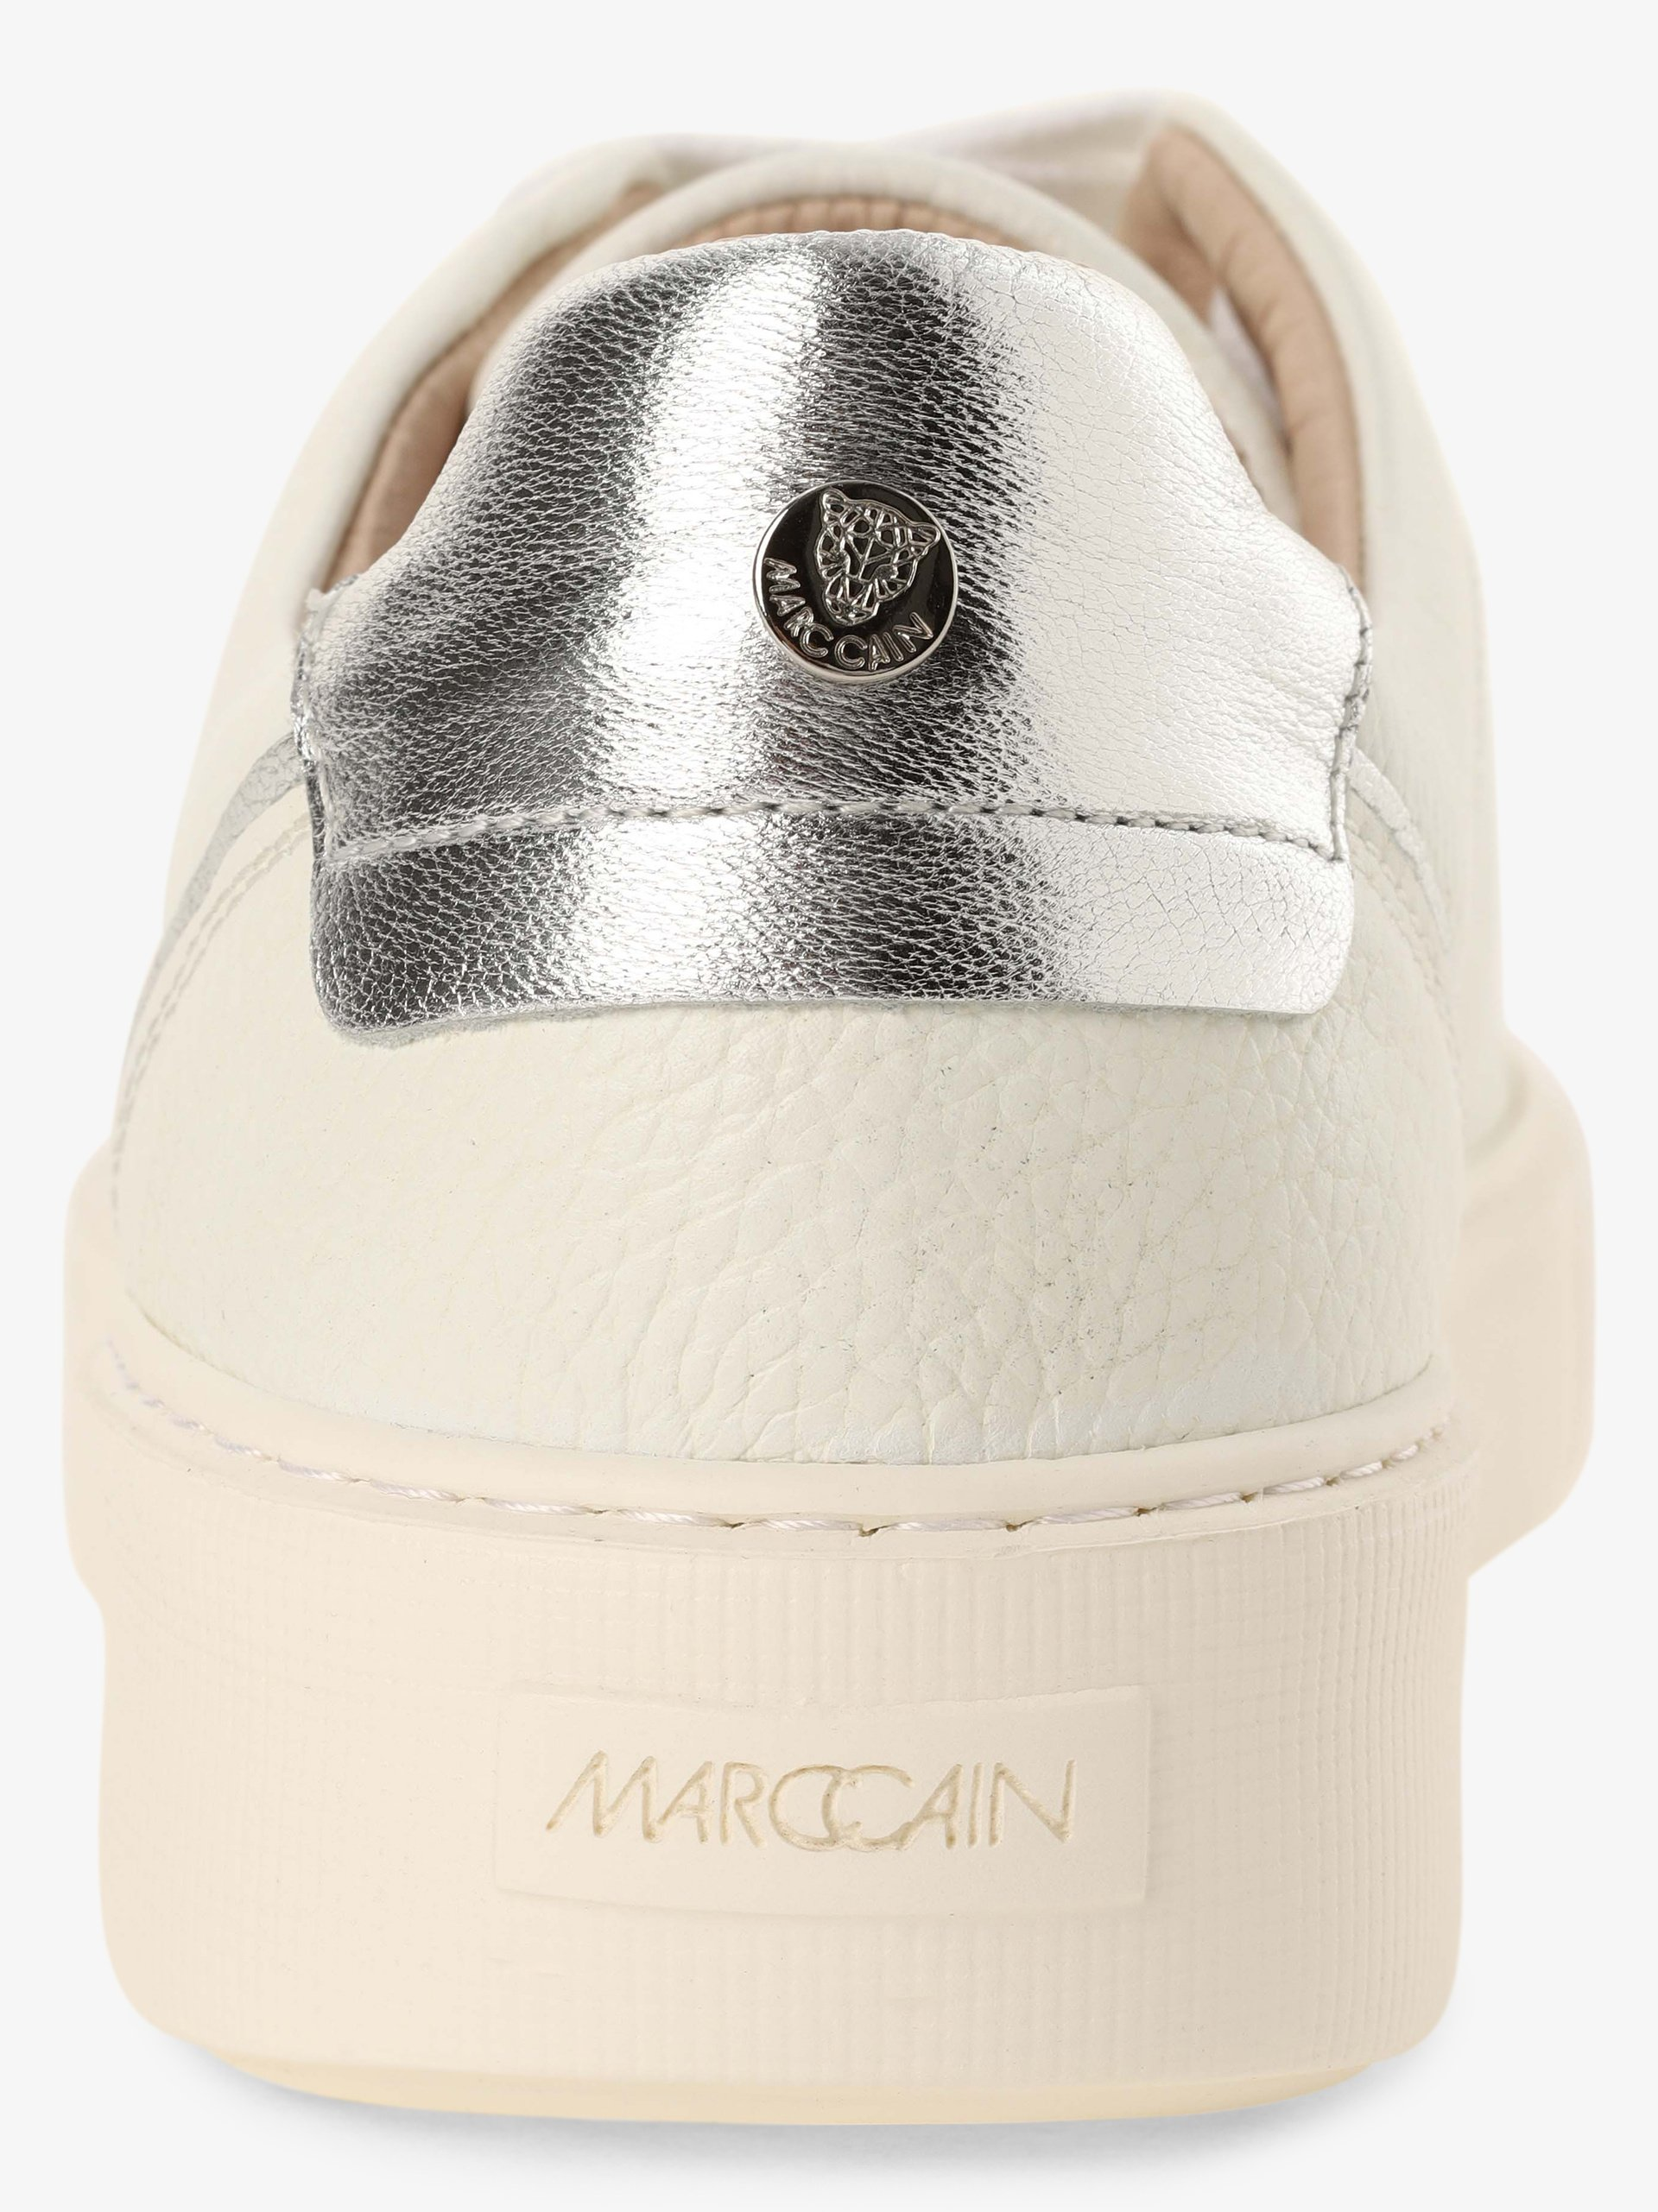 Marc Cain Bags & Shoes Damen Sneaker aus Leder